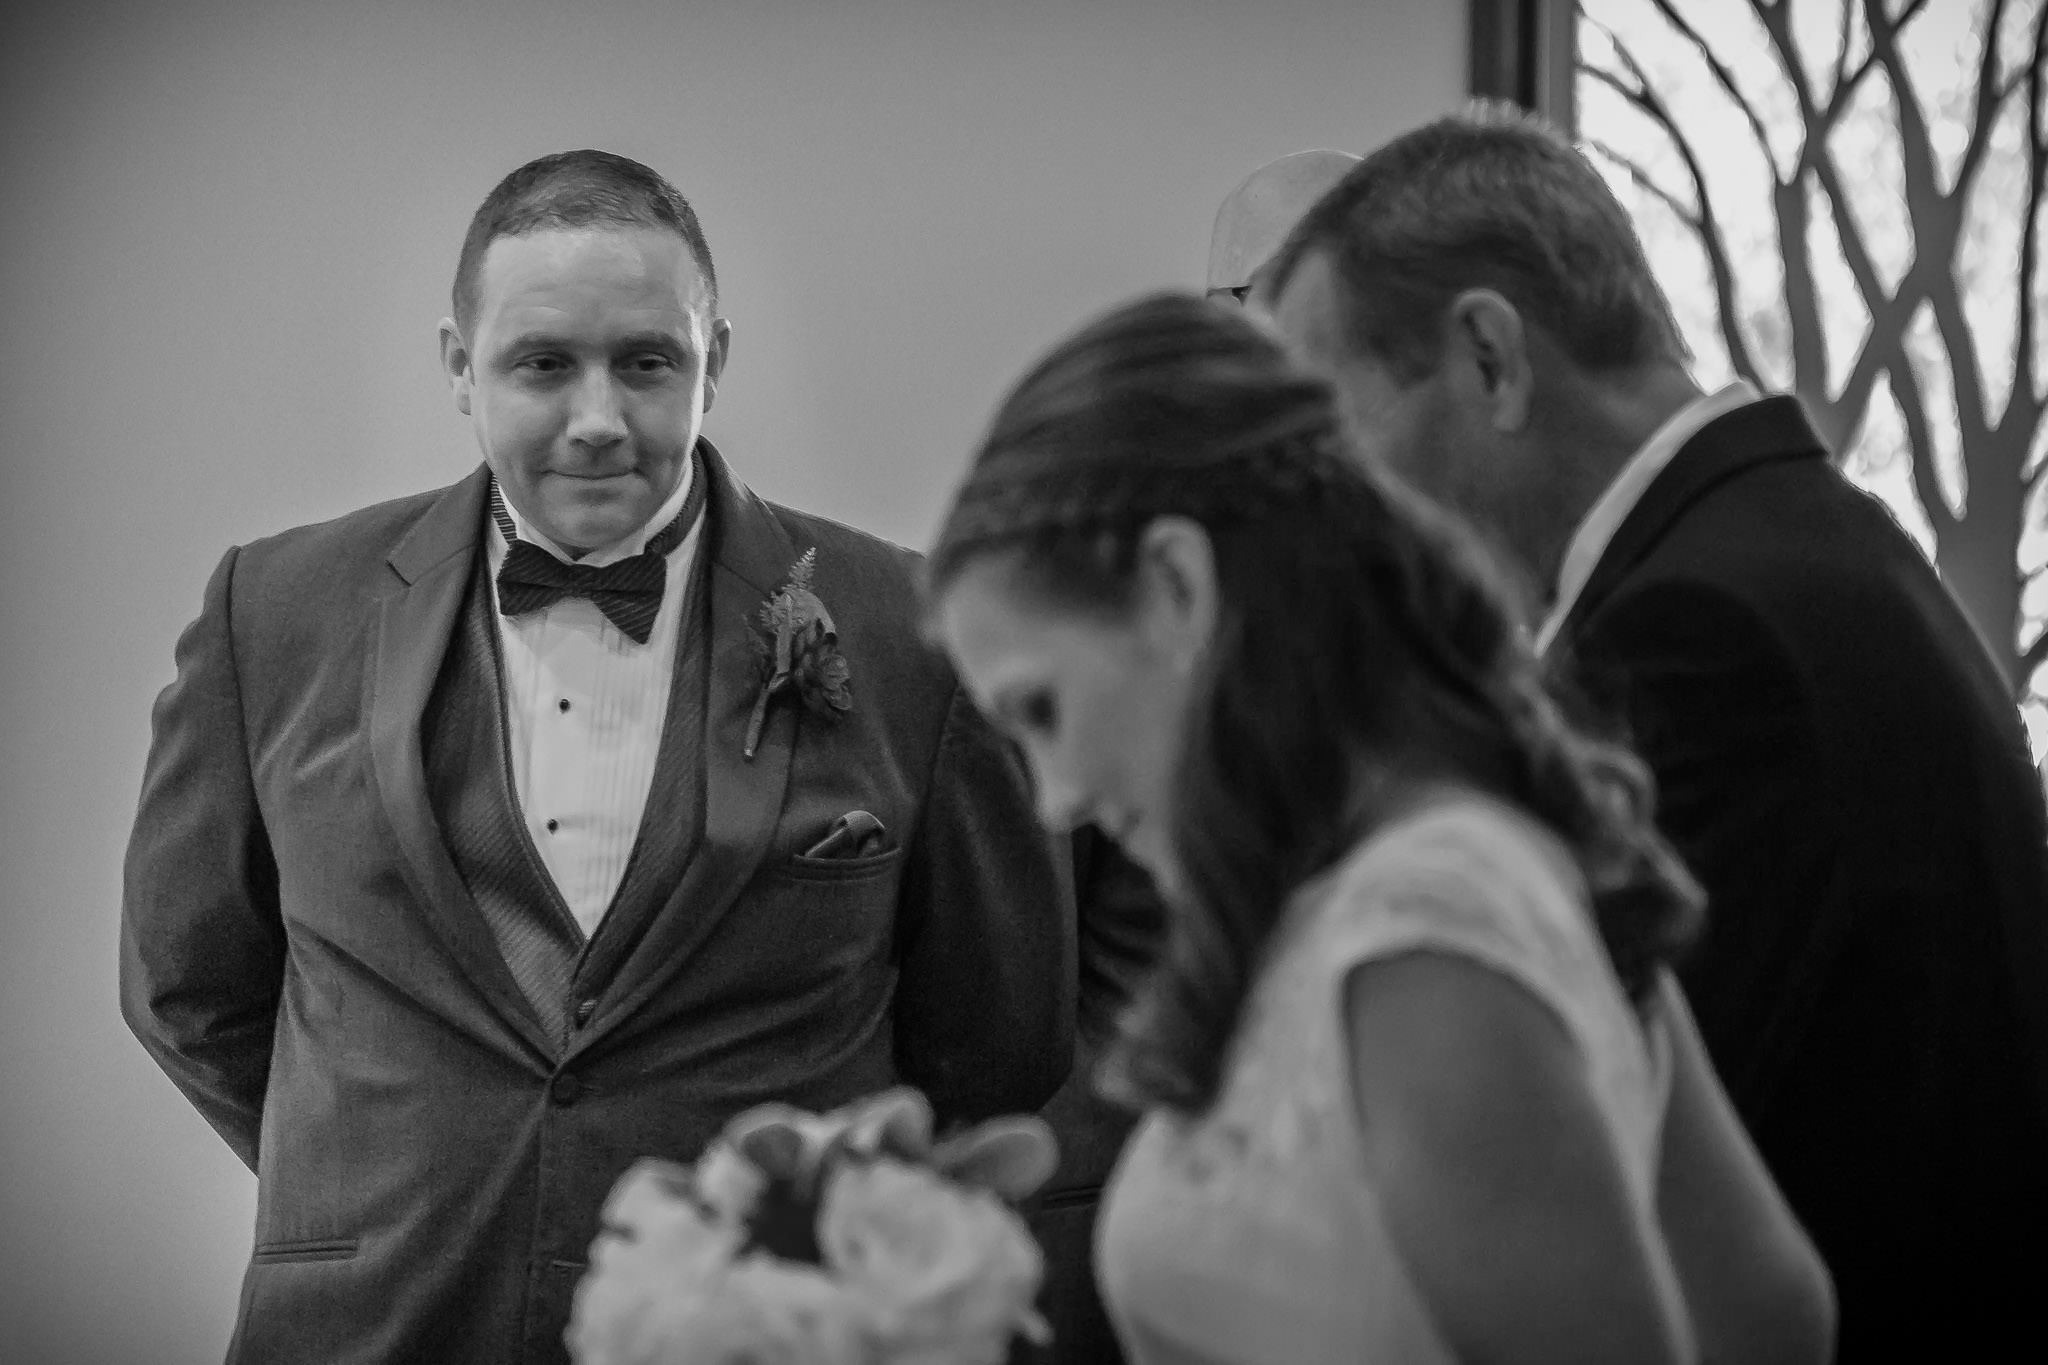 One of the best wedding photographers in Greenville SC photo of a groom watching his bride walk down the aisle